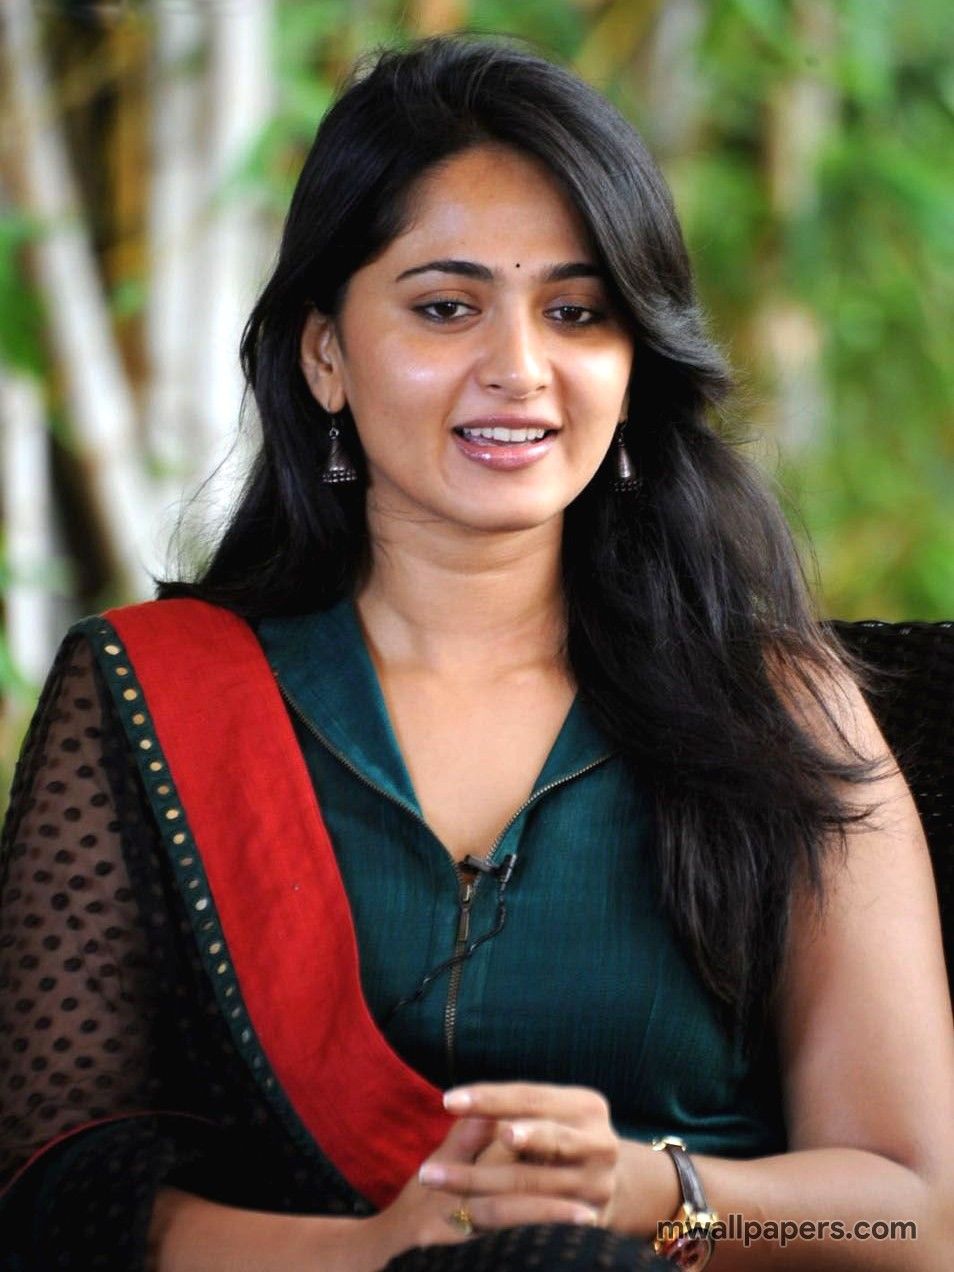 🌟 anushka shetty hd images [android/iphone/ipad hd wallpapers] 🌟